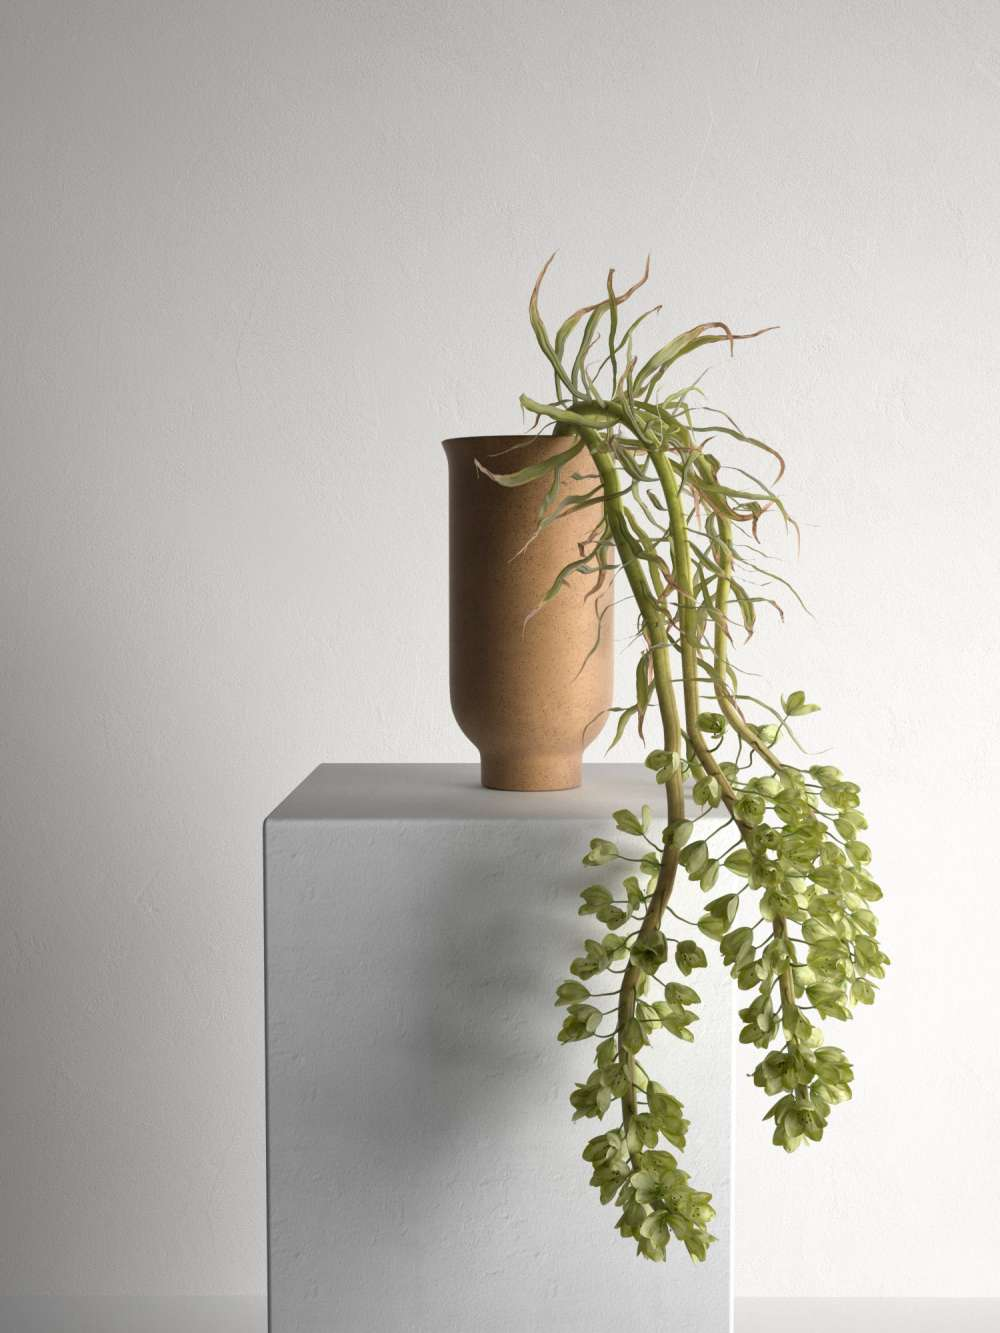 Cyclades Vase with Plants 3d model